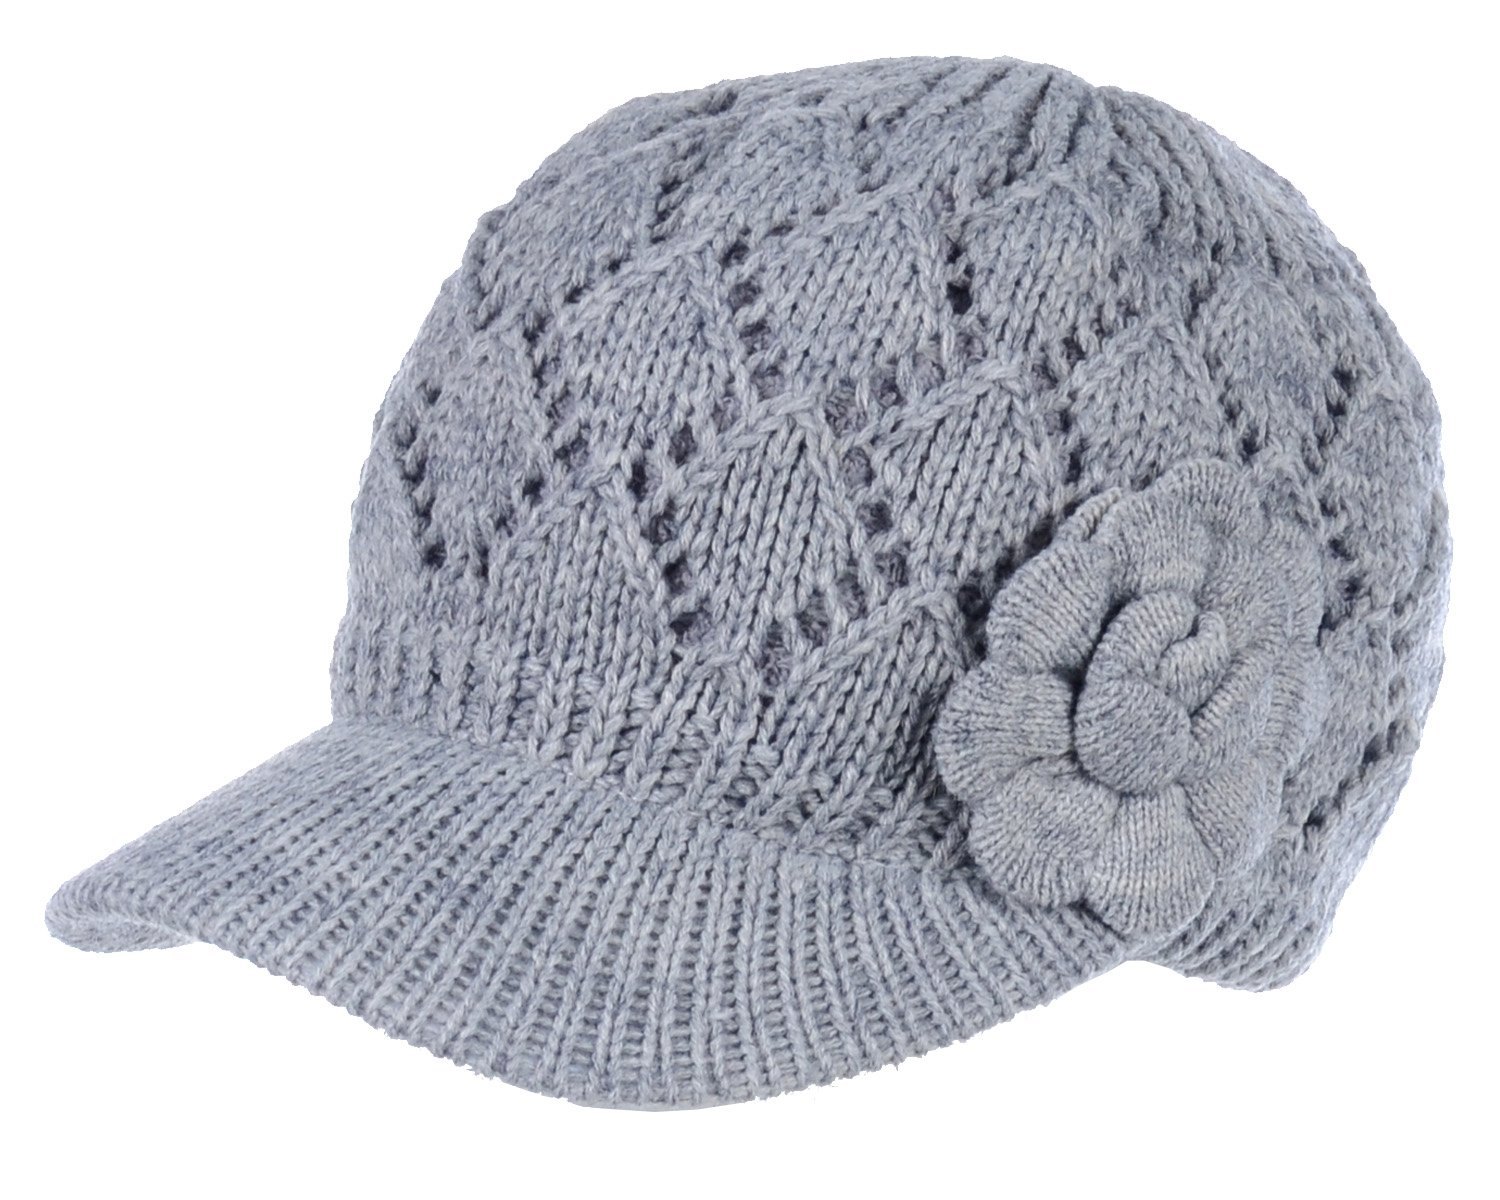 Be Your Own Style BYOS Womens Winter Chic Cable Knitted newsboy Cabbie Cap Beret Beanie Hat With Visor, Warm Plush Fleece Lined, Many (Diamond Pattern w/Flower Gray)